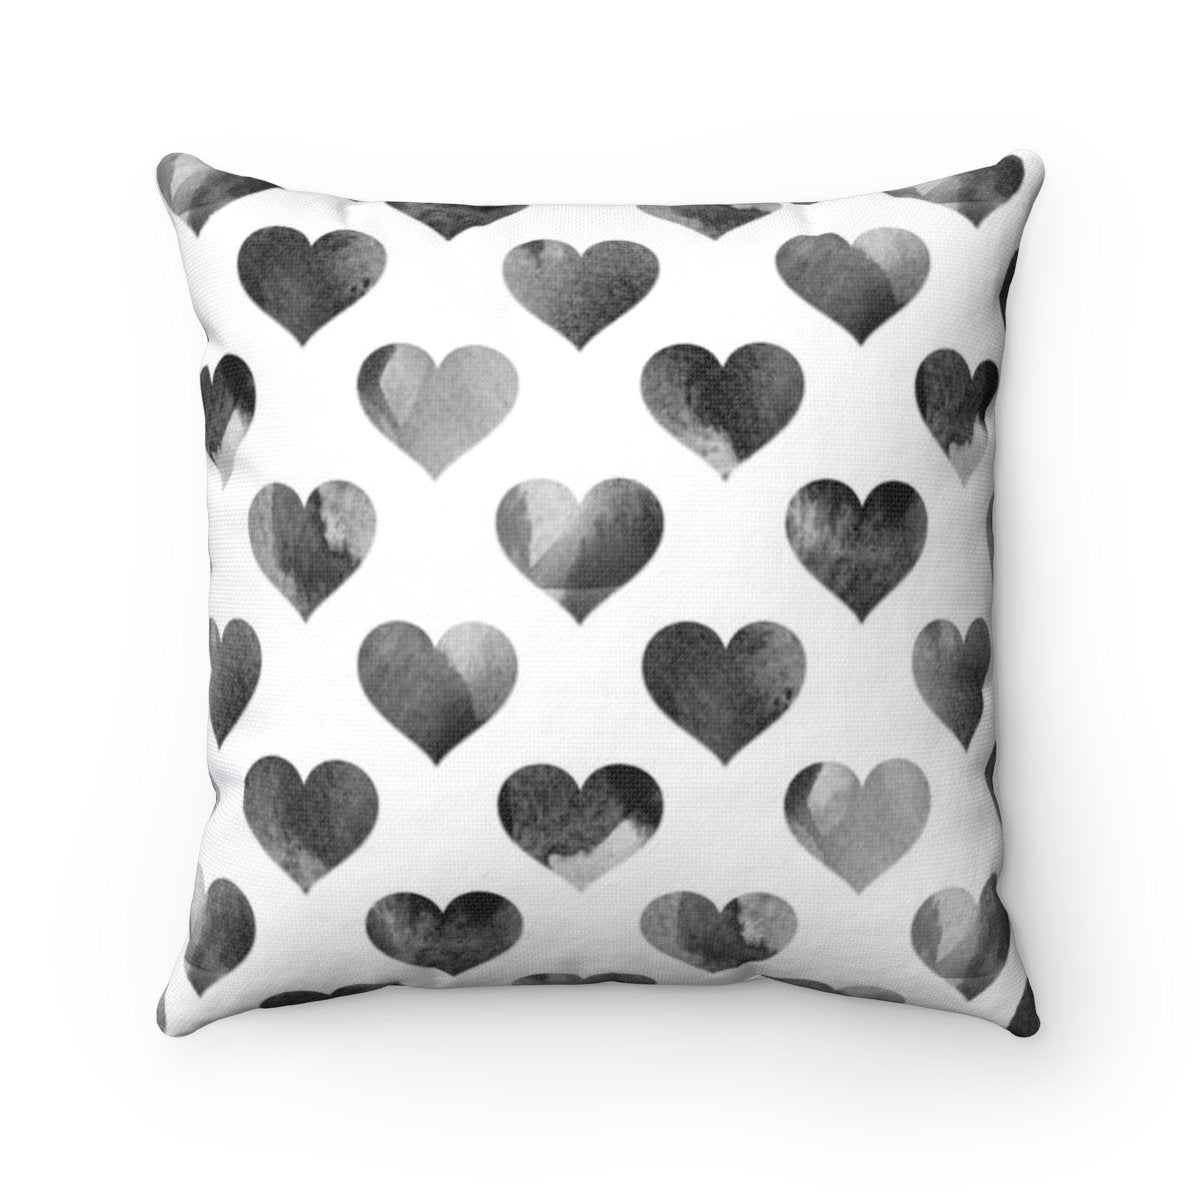 Black hearts Valentine decorative cushion cover for girls-Home Decor - Decorative Accents - Pillows & Throws - Decorative Pillows-Maison d'Elite-14x14-Très Elite